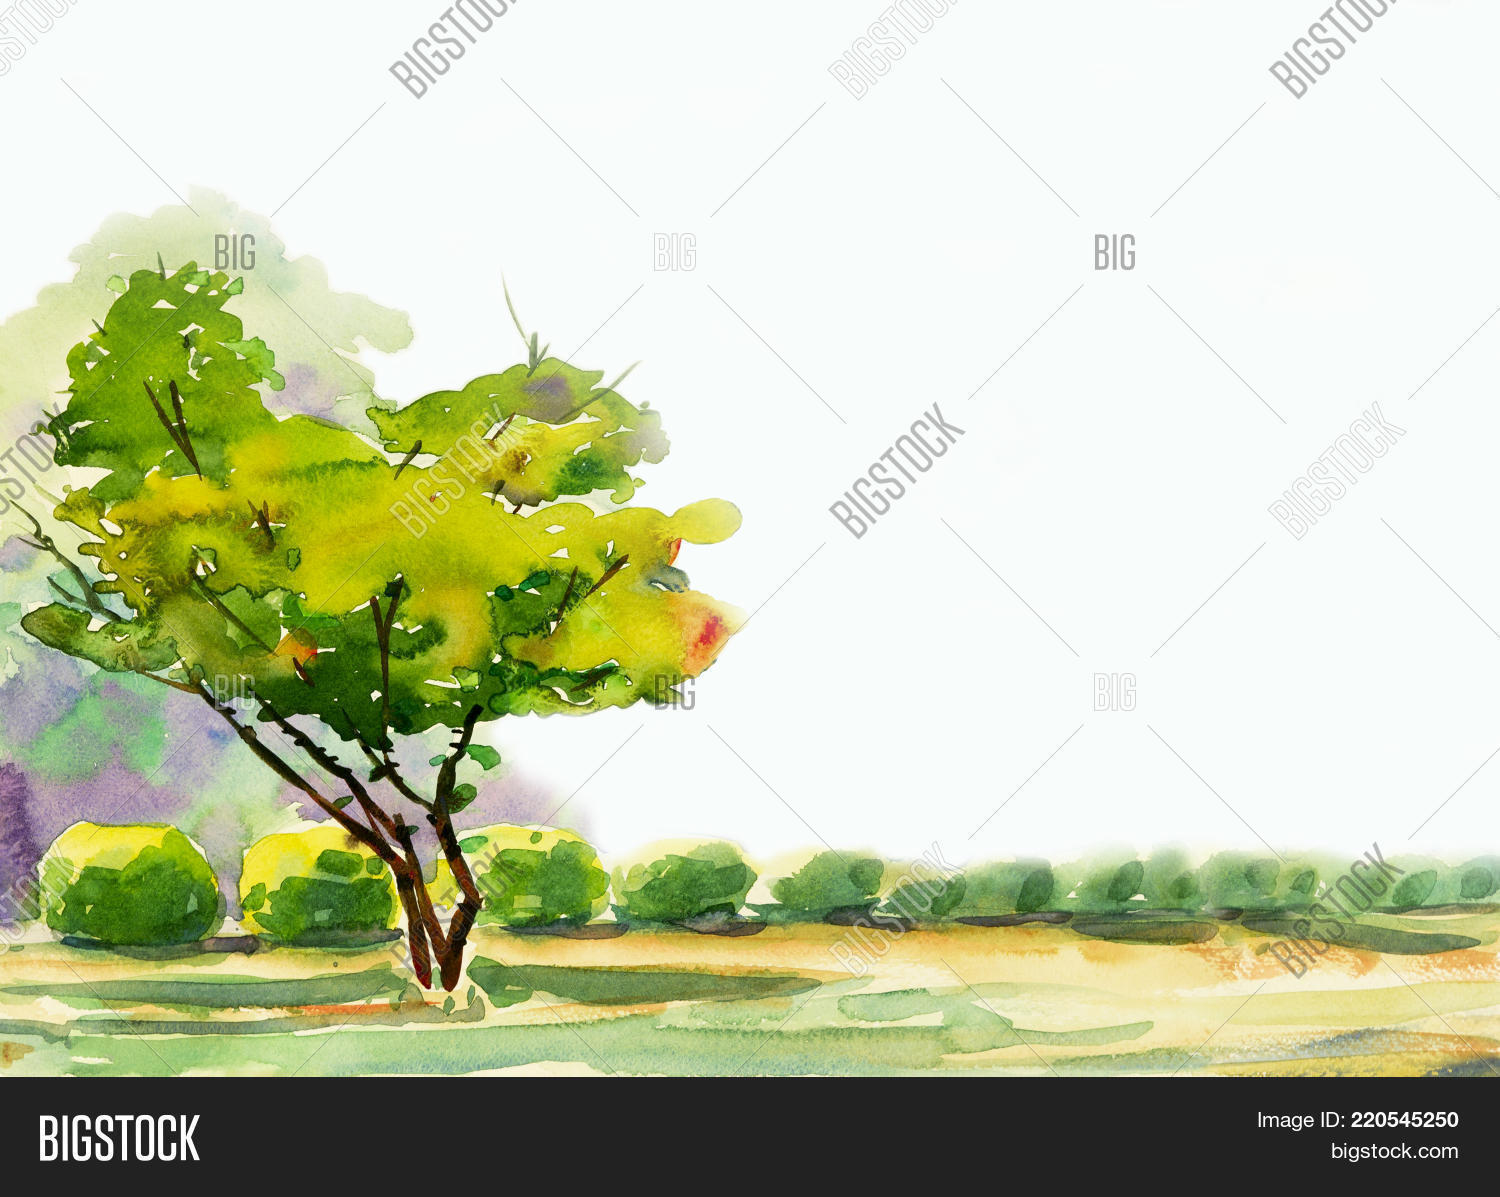 Abstract Watercolor Image & Photo (Free Trial)   Bigstock